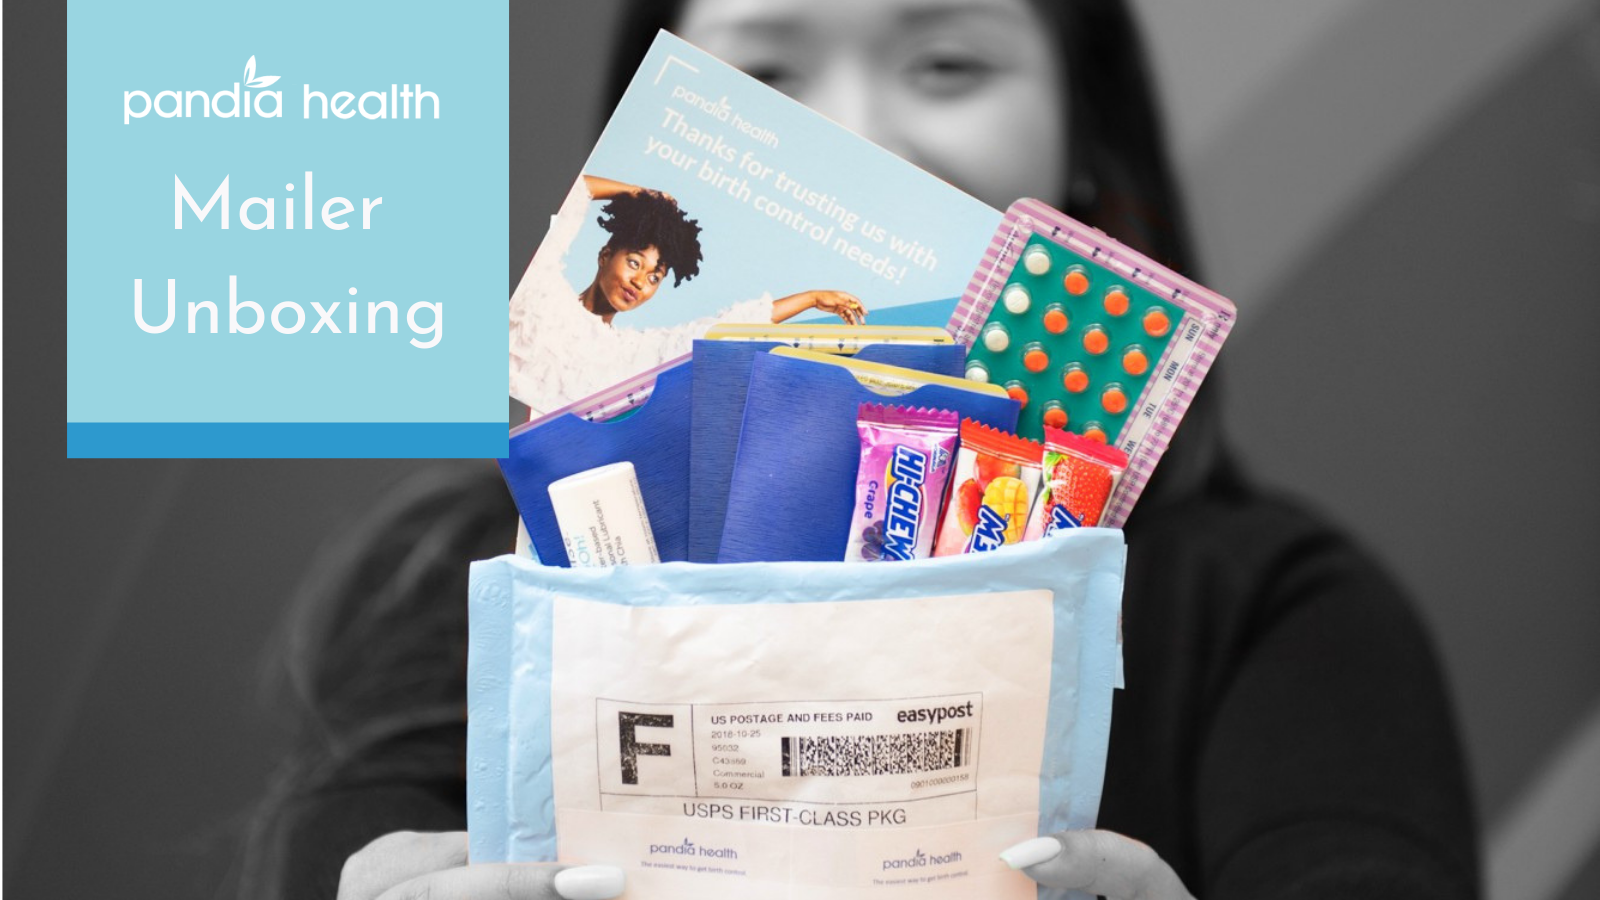 Girl holding Pandia Health mailer, unboxing her birth control and other goodies that come with the package